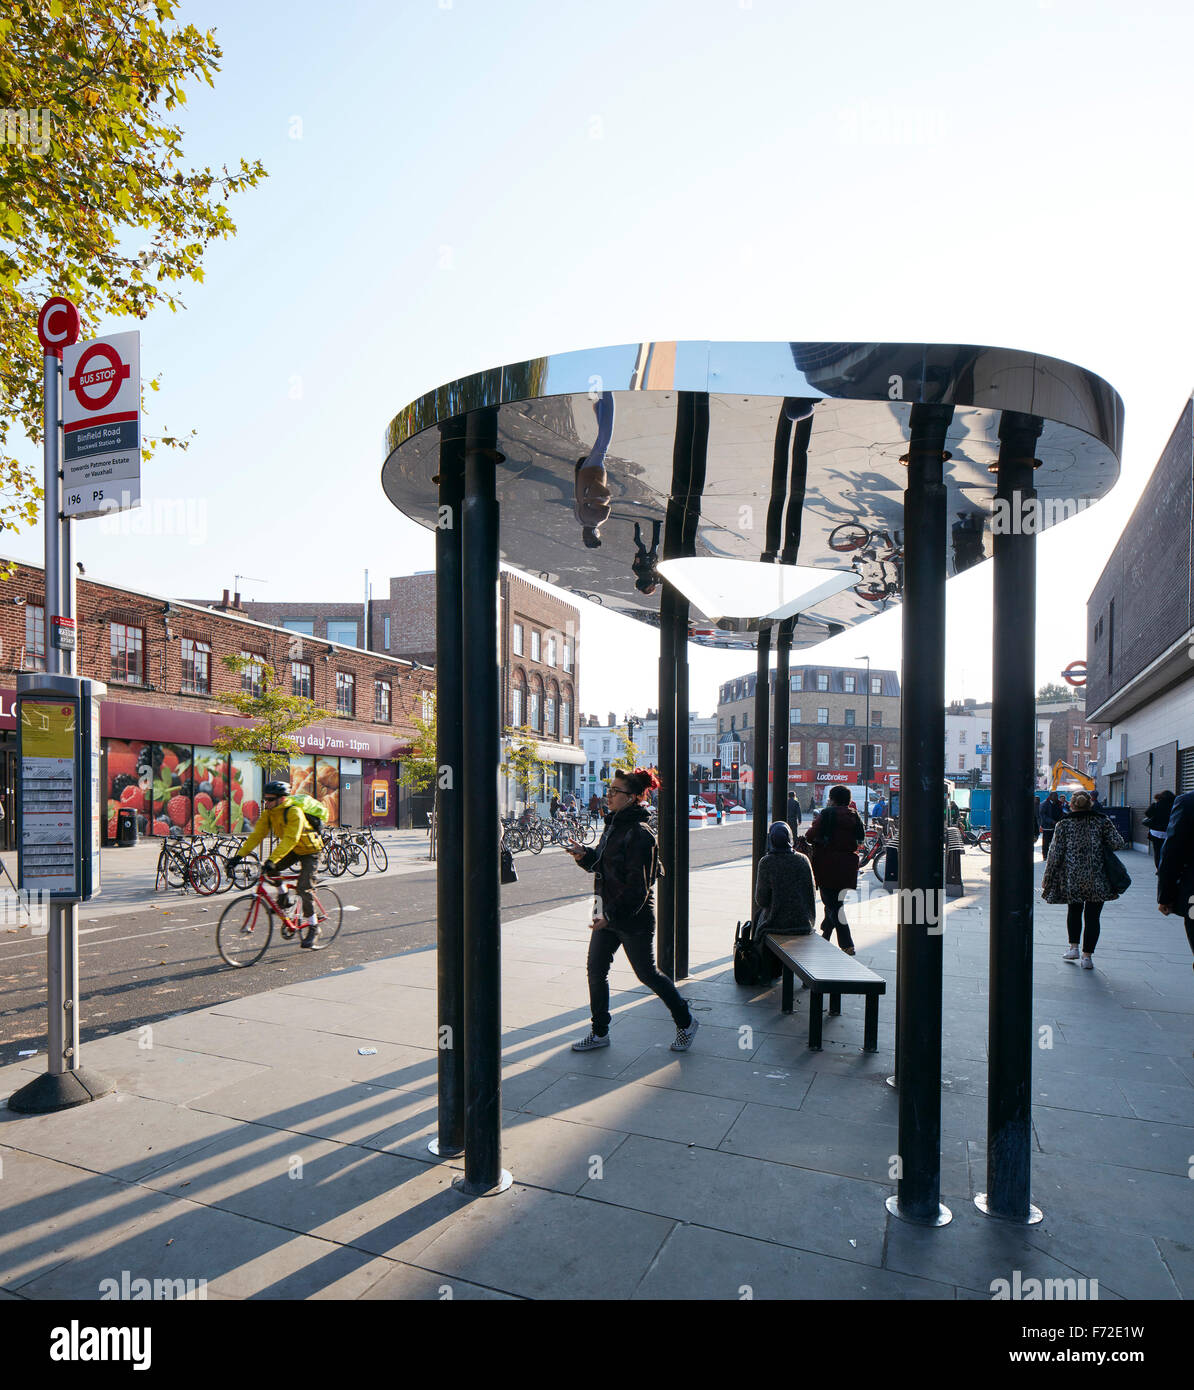 Bus shelter with view along Binfield Rd. Binfield Road Bus Shelter, Stockwell Framework Masterplan, London, United - Stock Image